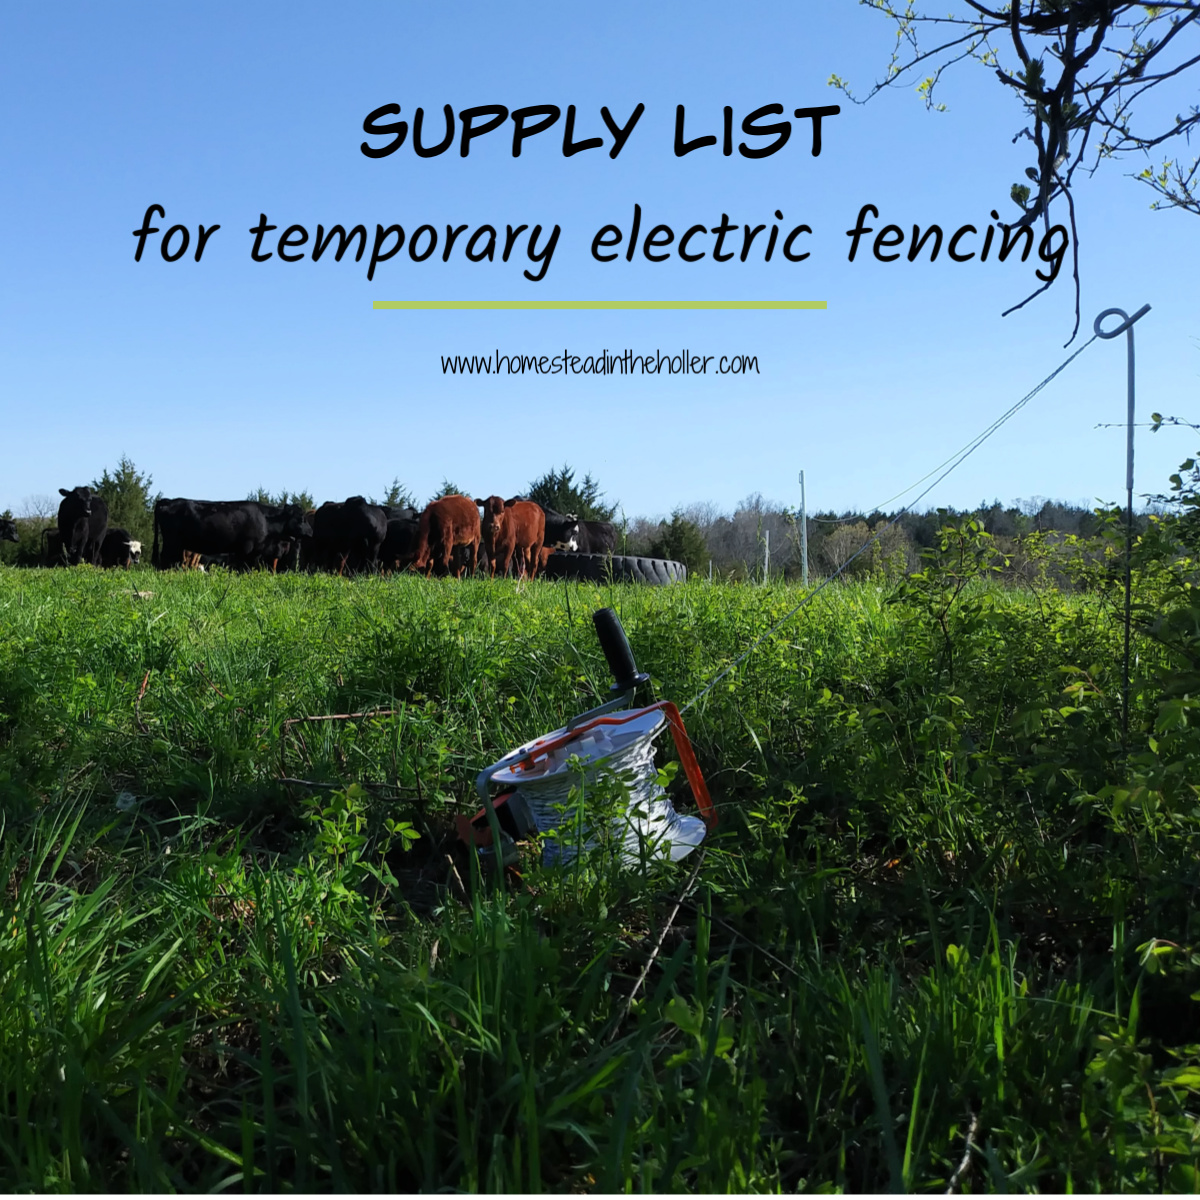 Electric fencing supplies - Homestead In The Holler